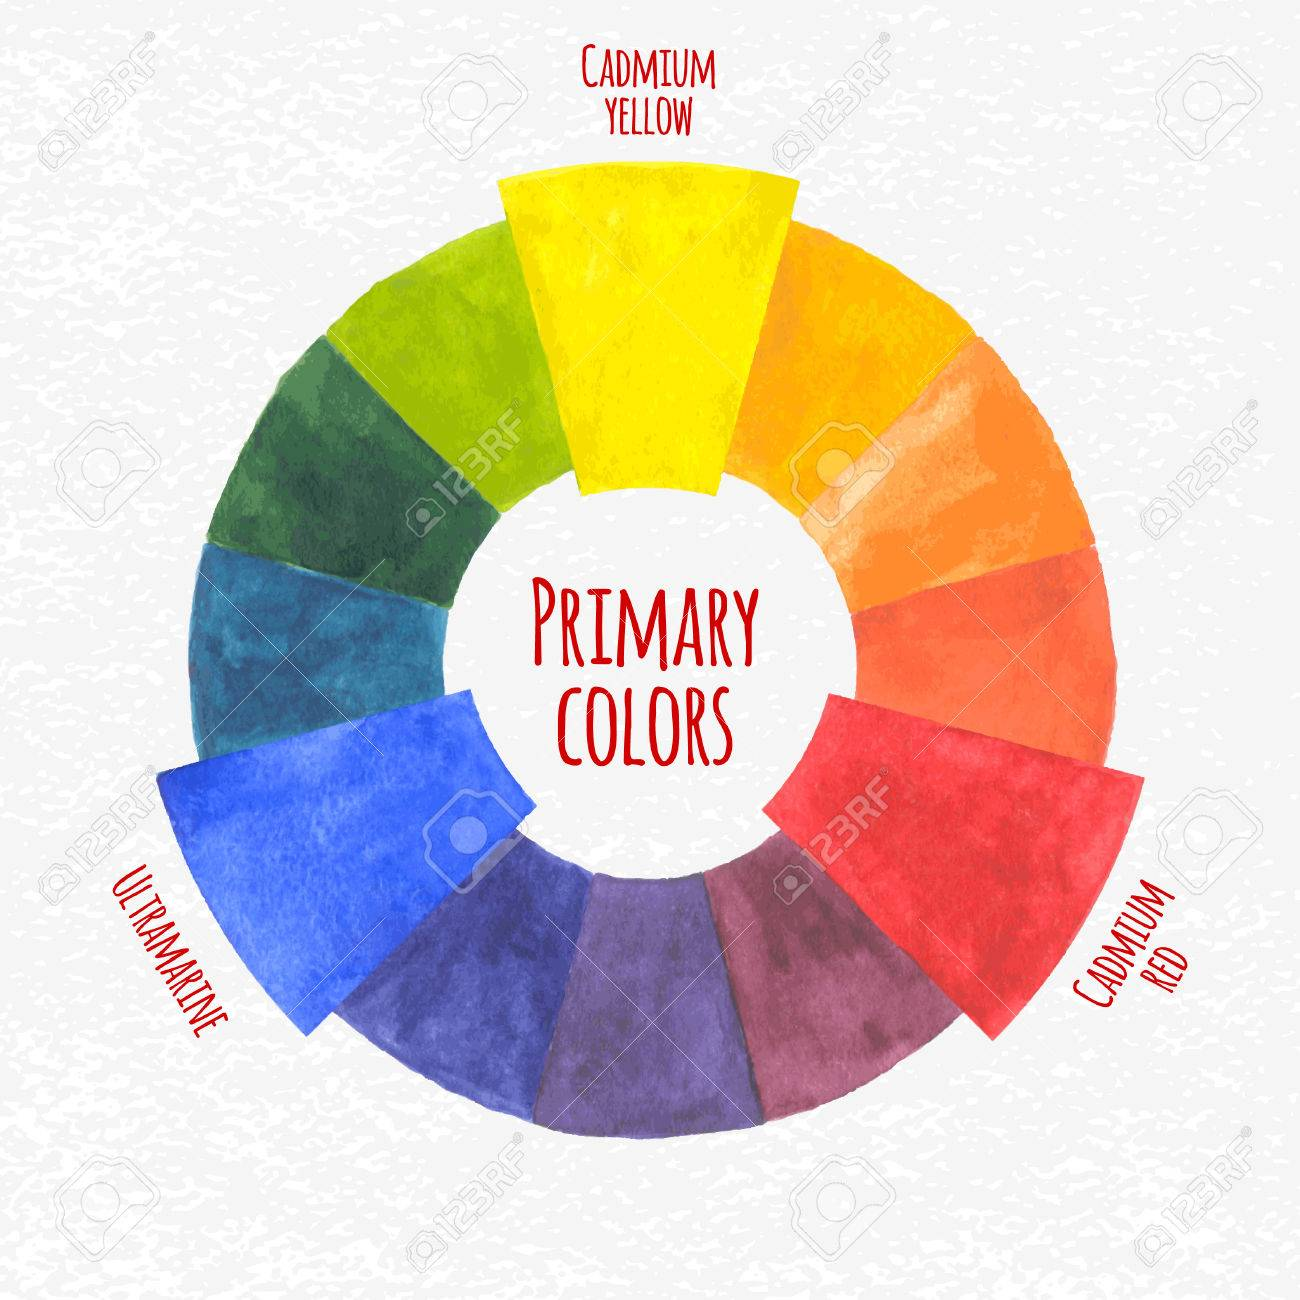 Handmade Color Wheel Primary Colors Chart